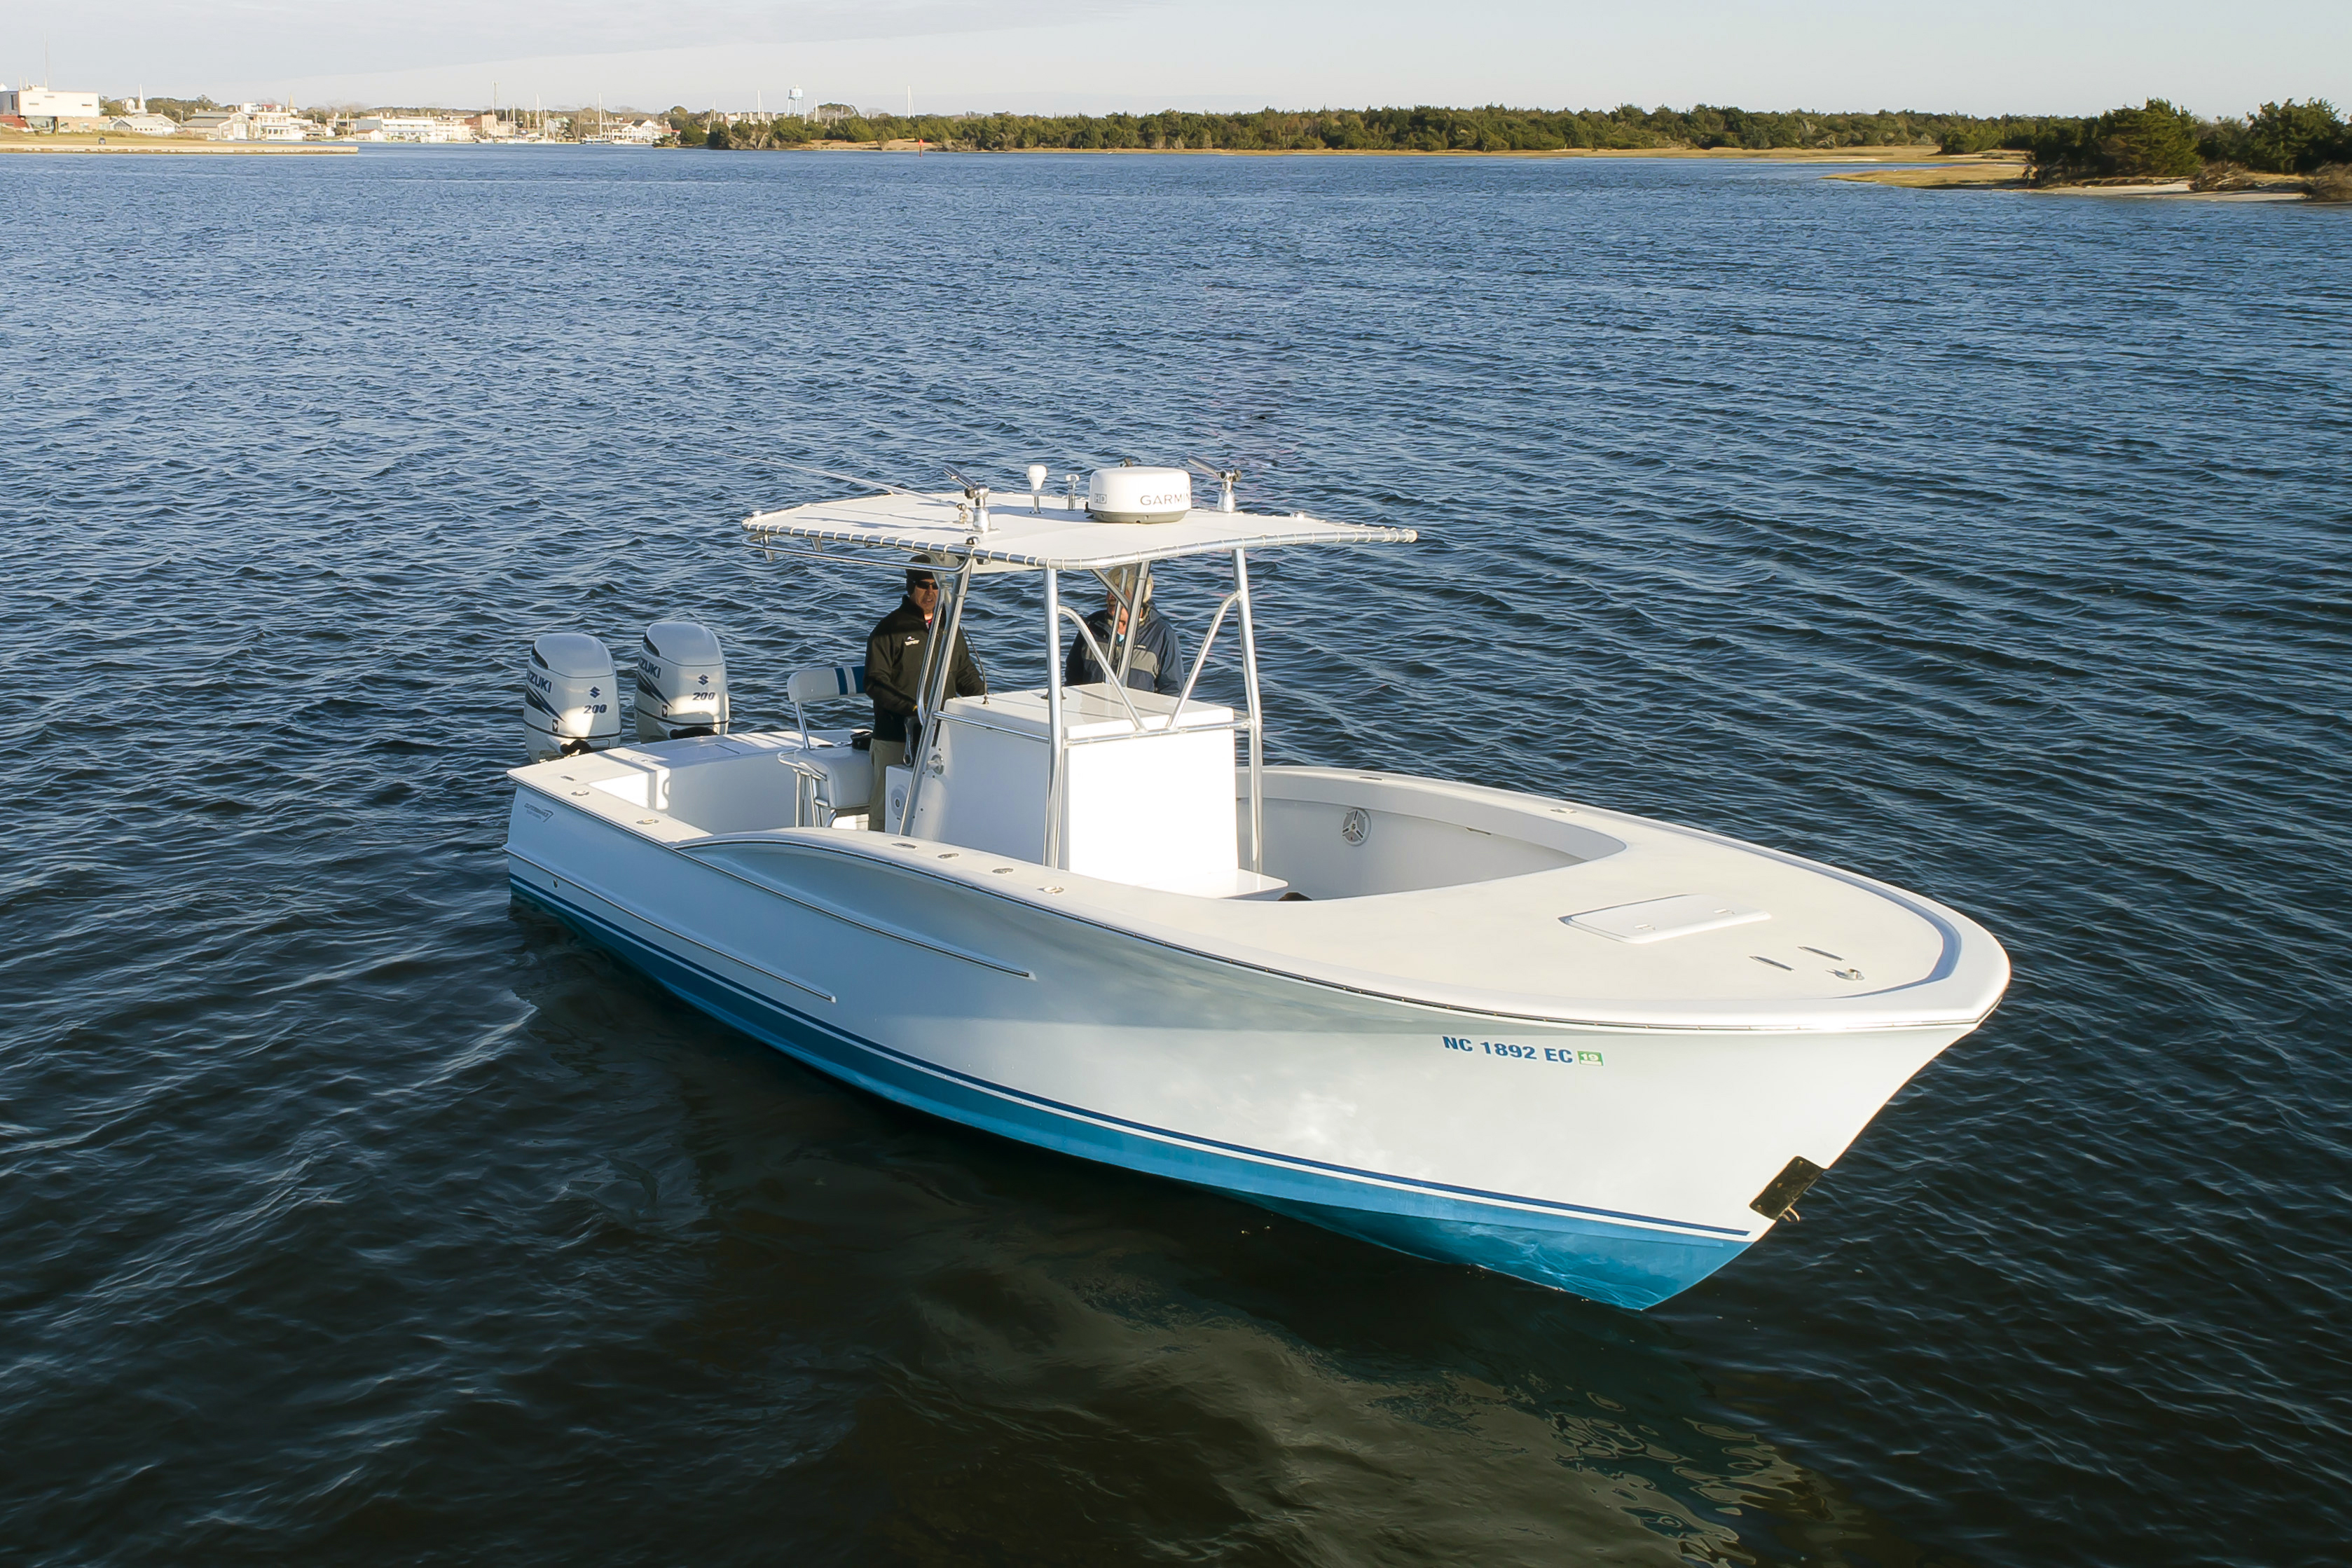 Boats for sale in 28516 - Boat Trader